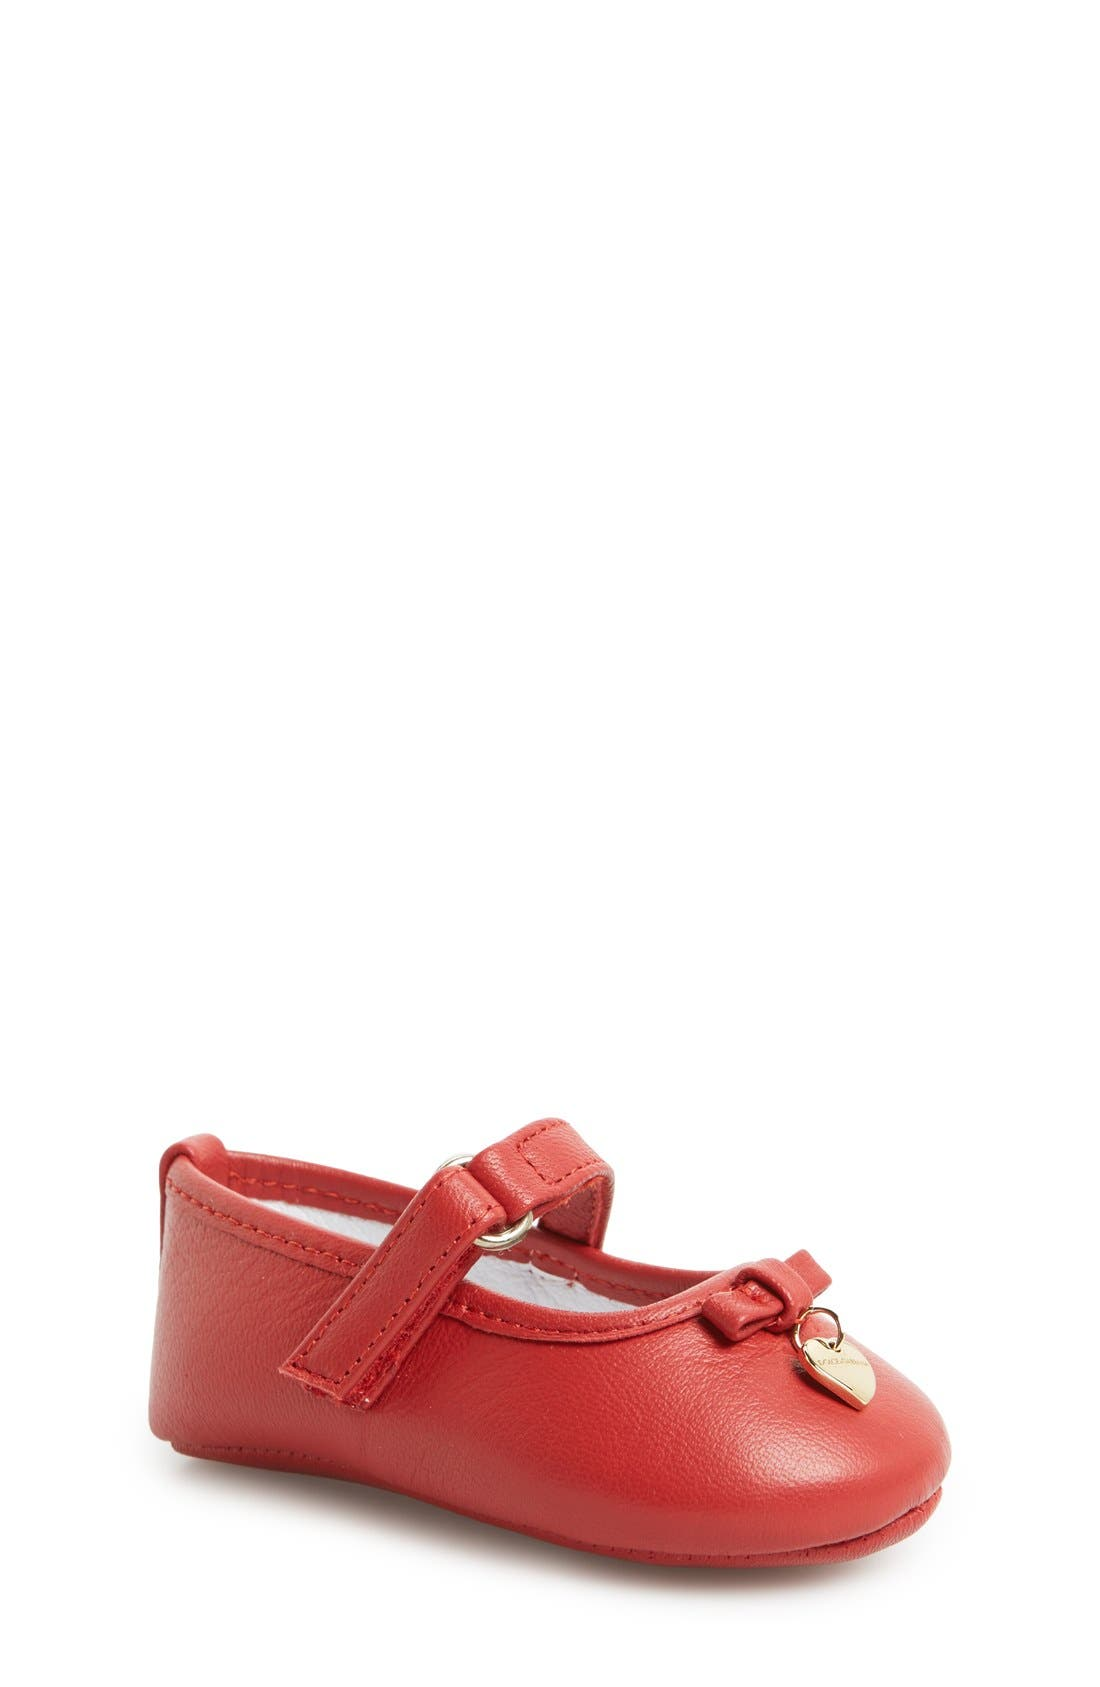 Alternate Image 1 Selected - Dolce&Gabbana Mary Jane Crib Shoe (Baby & Walker)